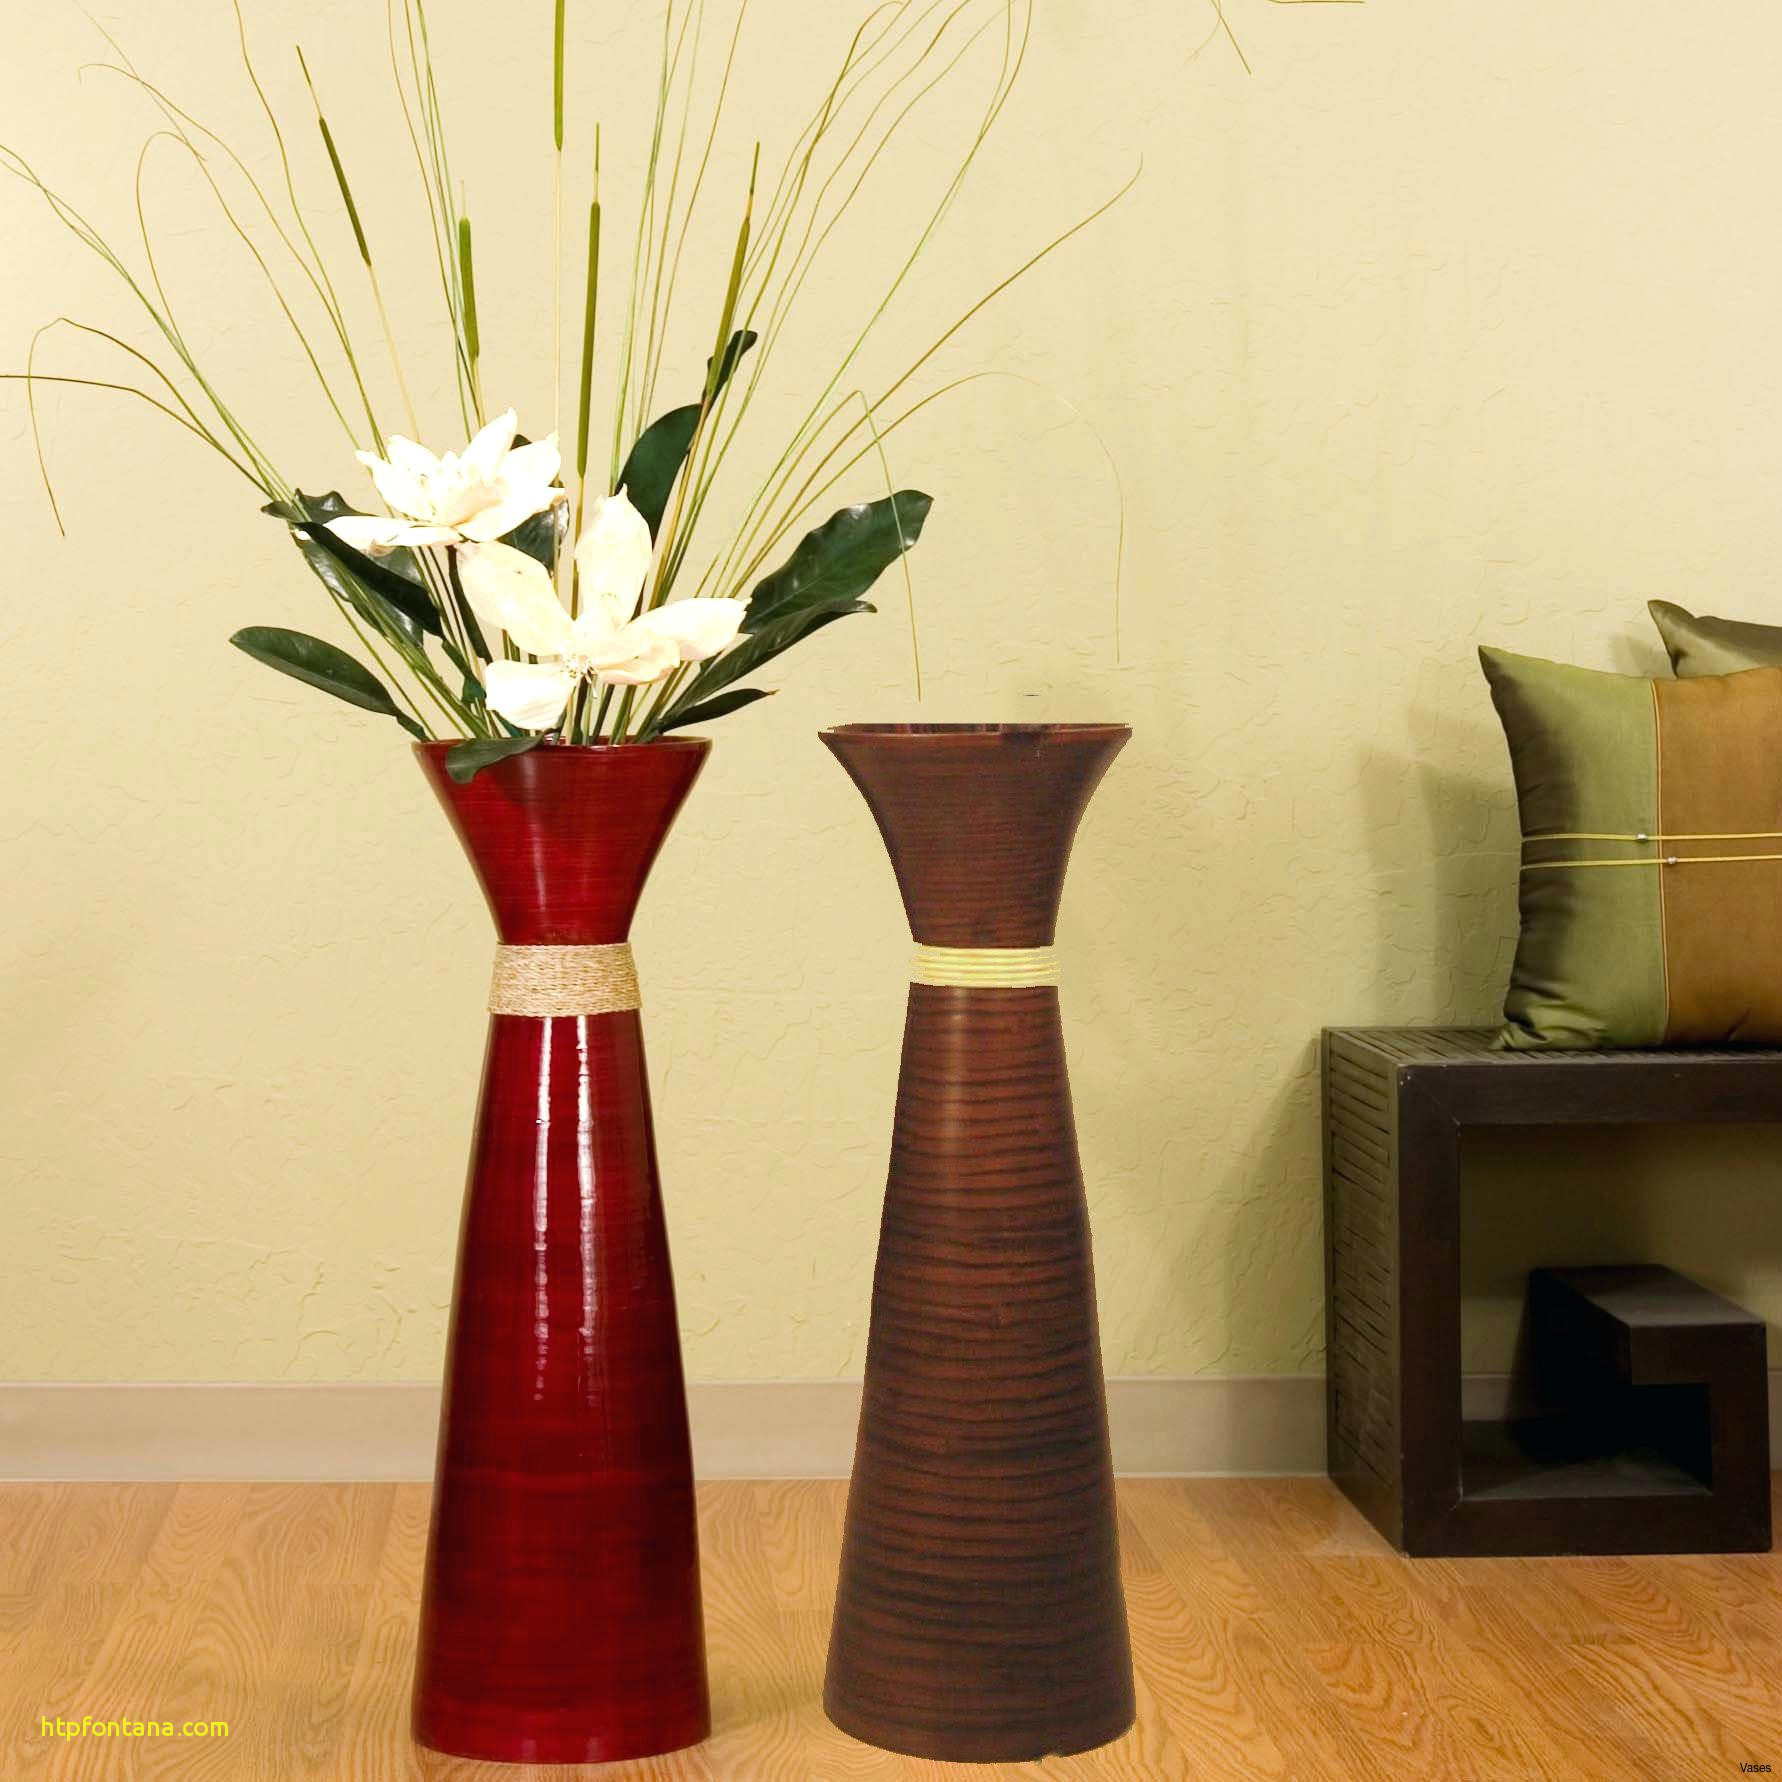 floor vase set of 2 of floor vase fresh colorful floor vases elegant how to draw a vase with regard to floor vase fresh colorful floor vases elegant how to draw a vase step 2h vases by